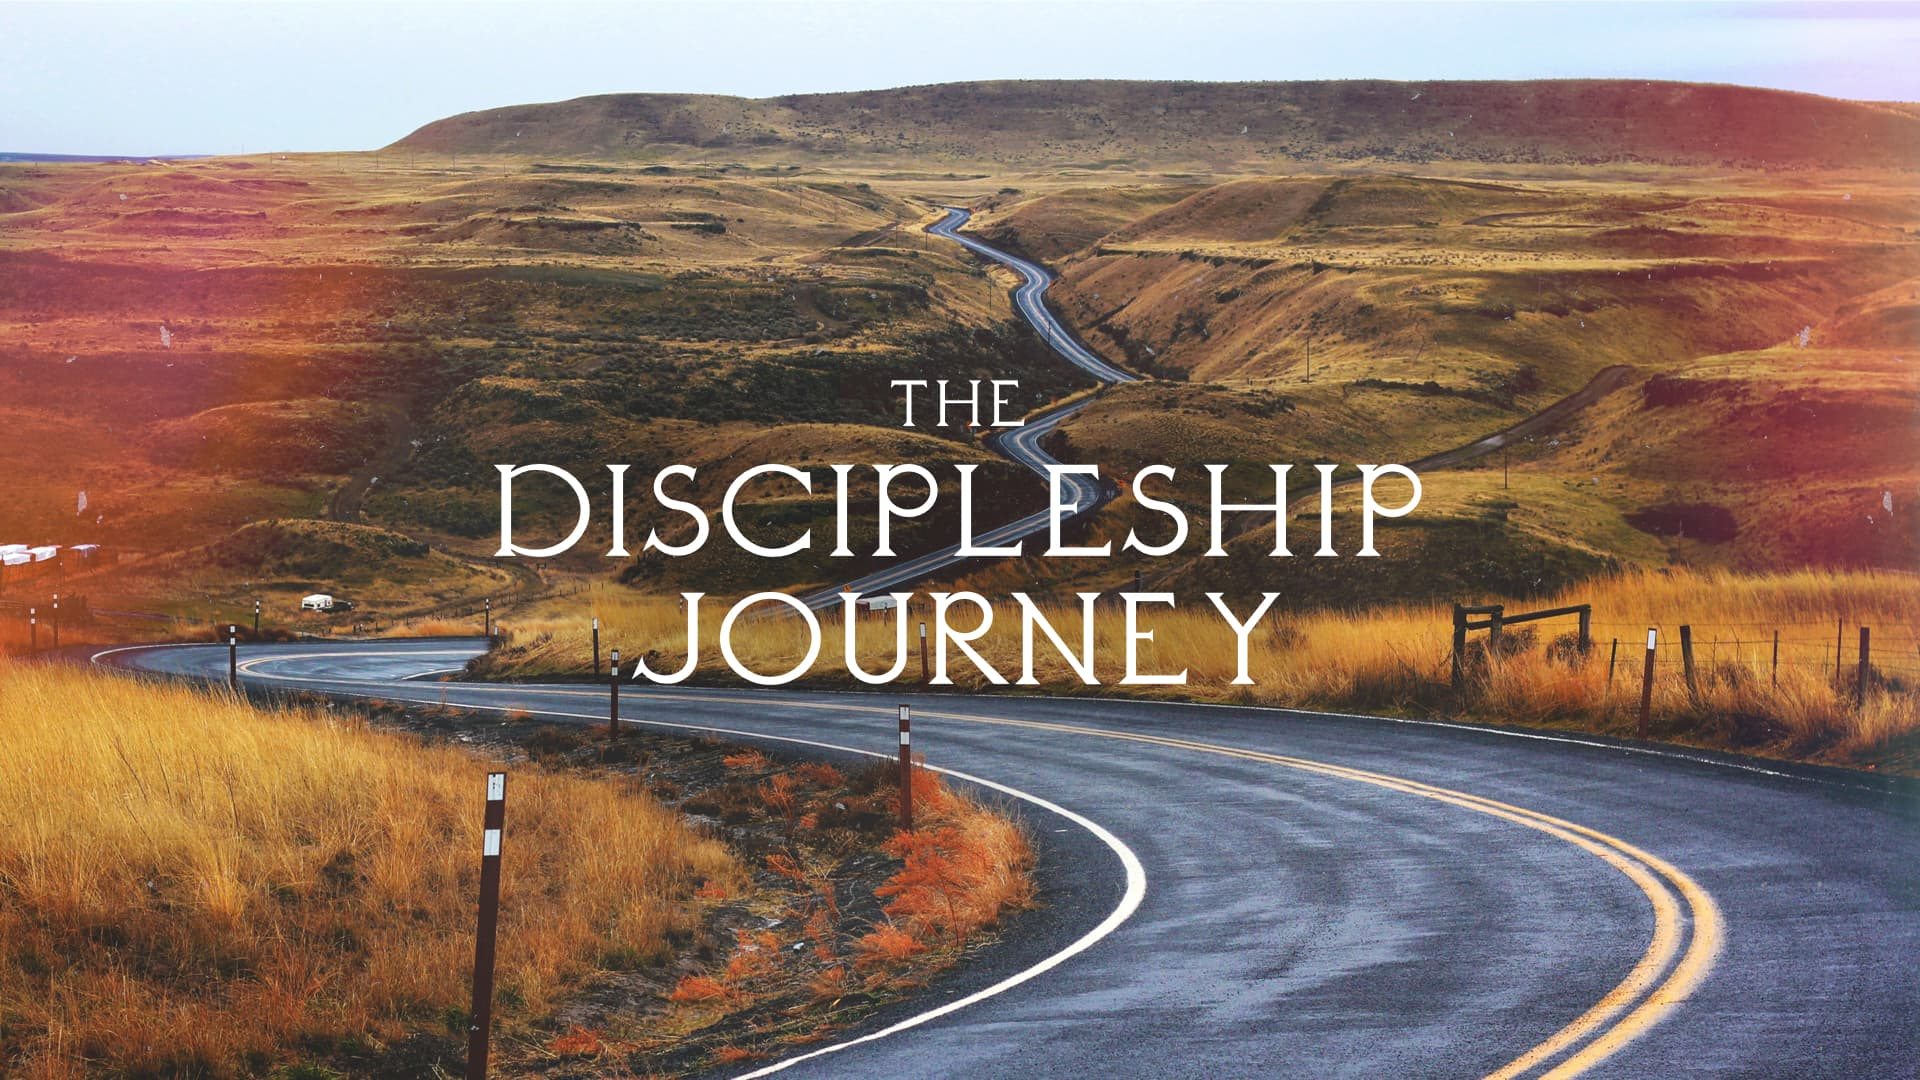 The Discipleship Journey